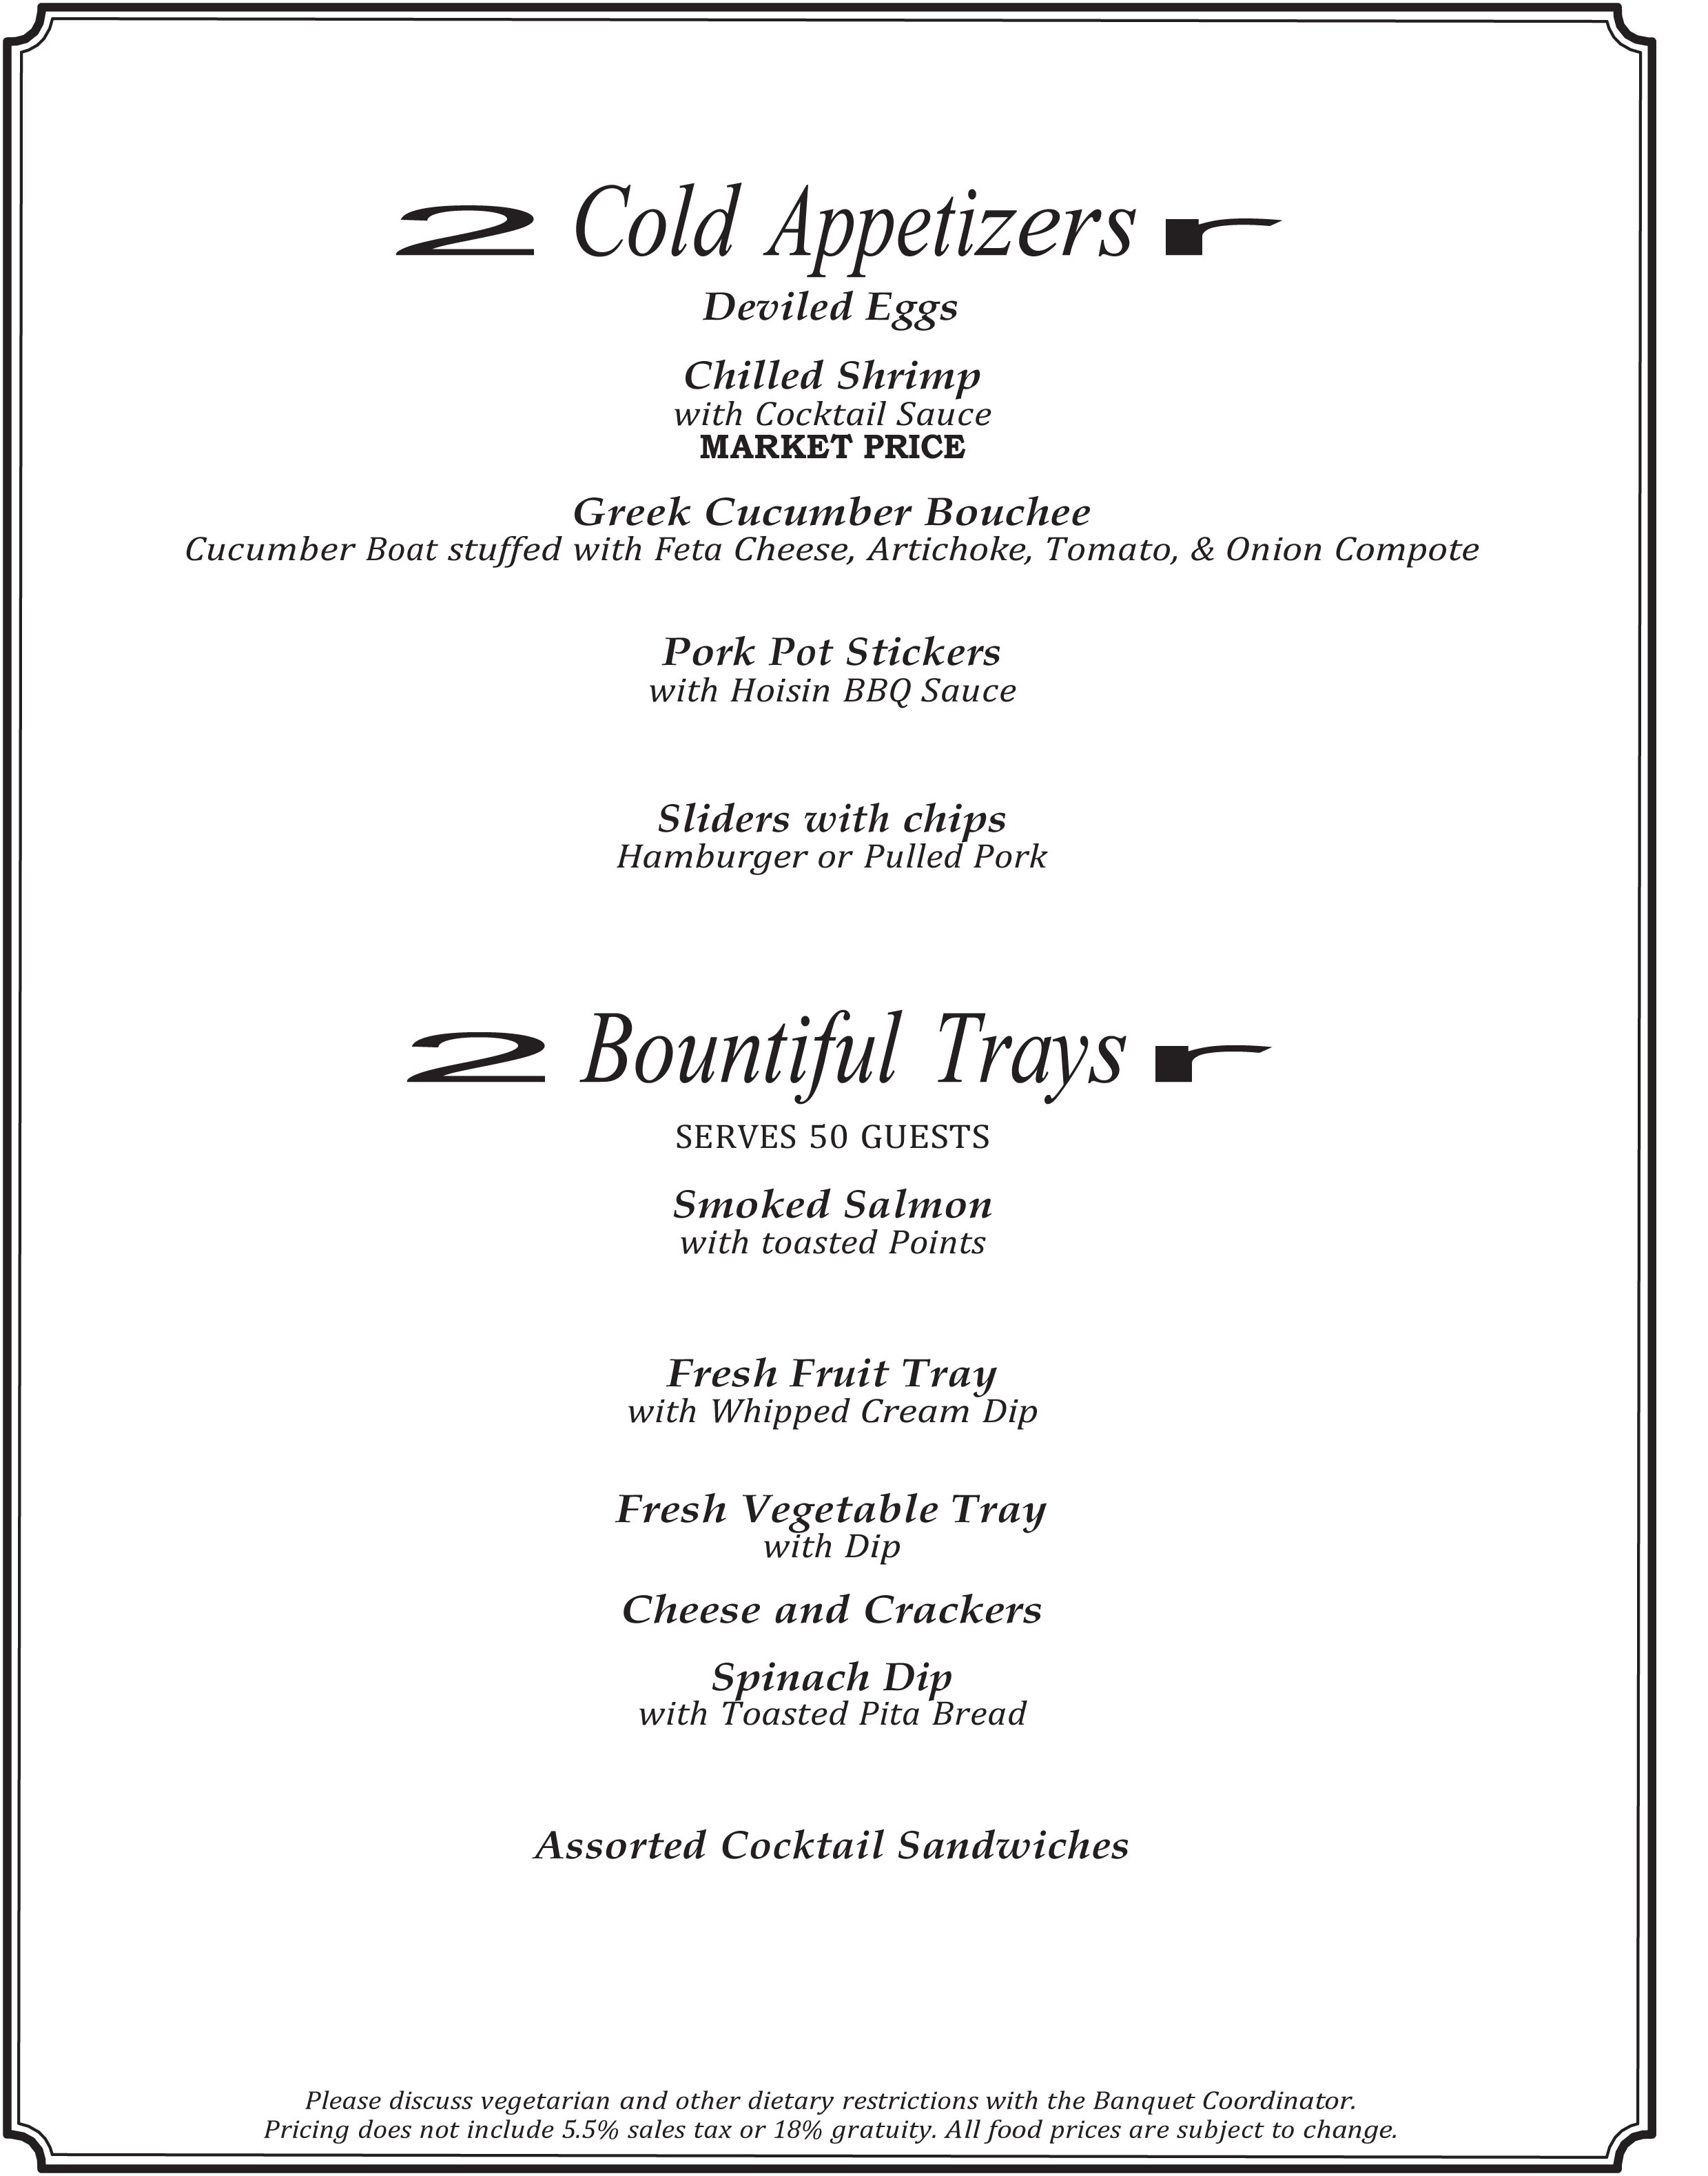 Elks_Banquet_Menu_Oct_15-6